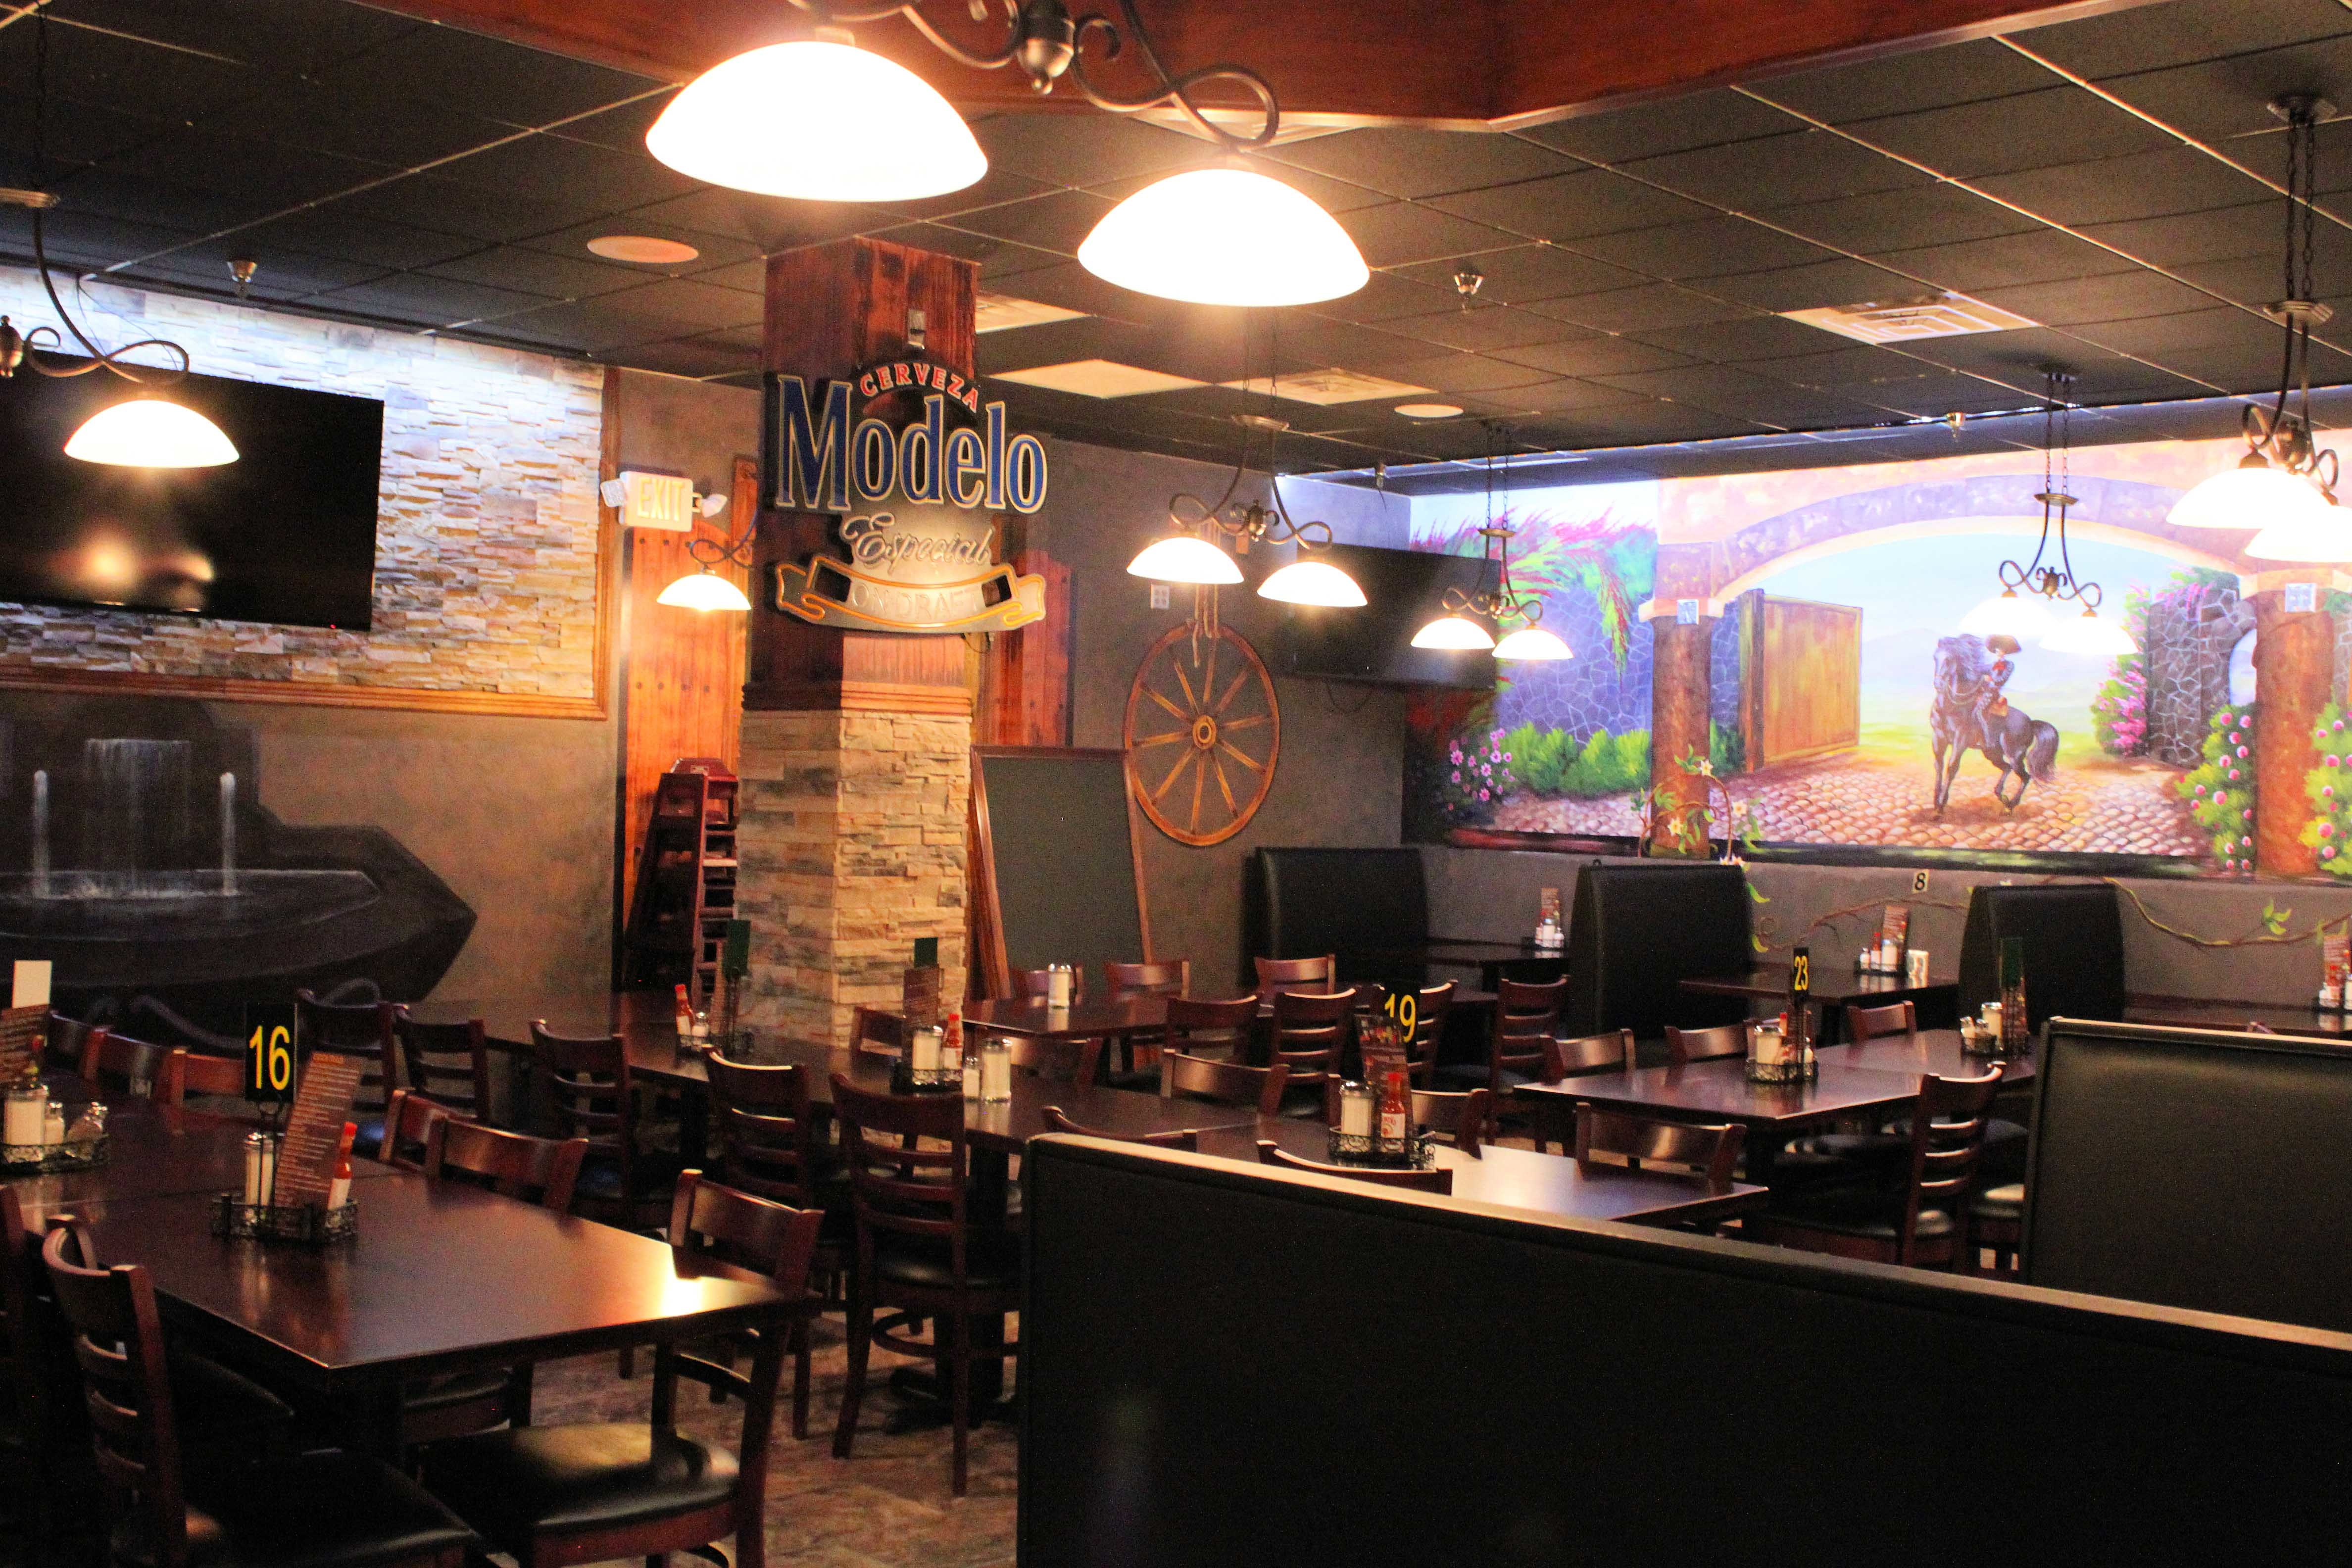 Mexico Lindo Mexican Restaurant Bar and Grill image 5